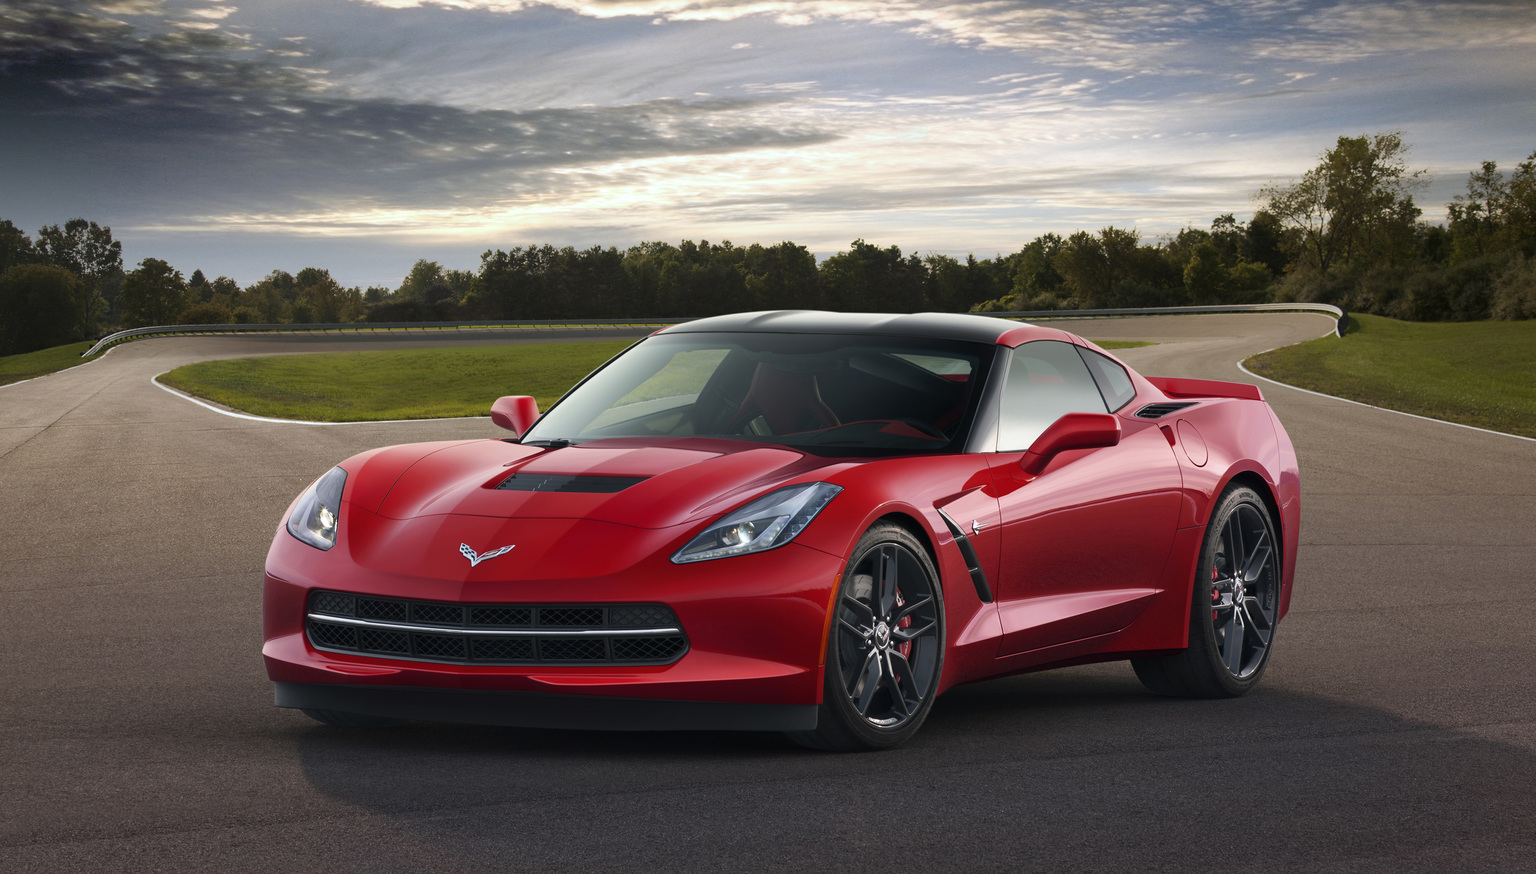 2014 chevrolet corvette stingray chevrolet supercars the all new 2014 chevrolet corvette stingrays provocative exterior styling is as functional as it is elegant every line vent inlet and surface has been sciox Images